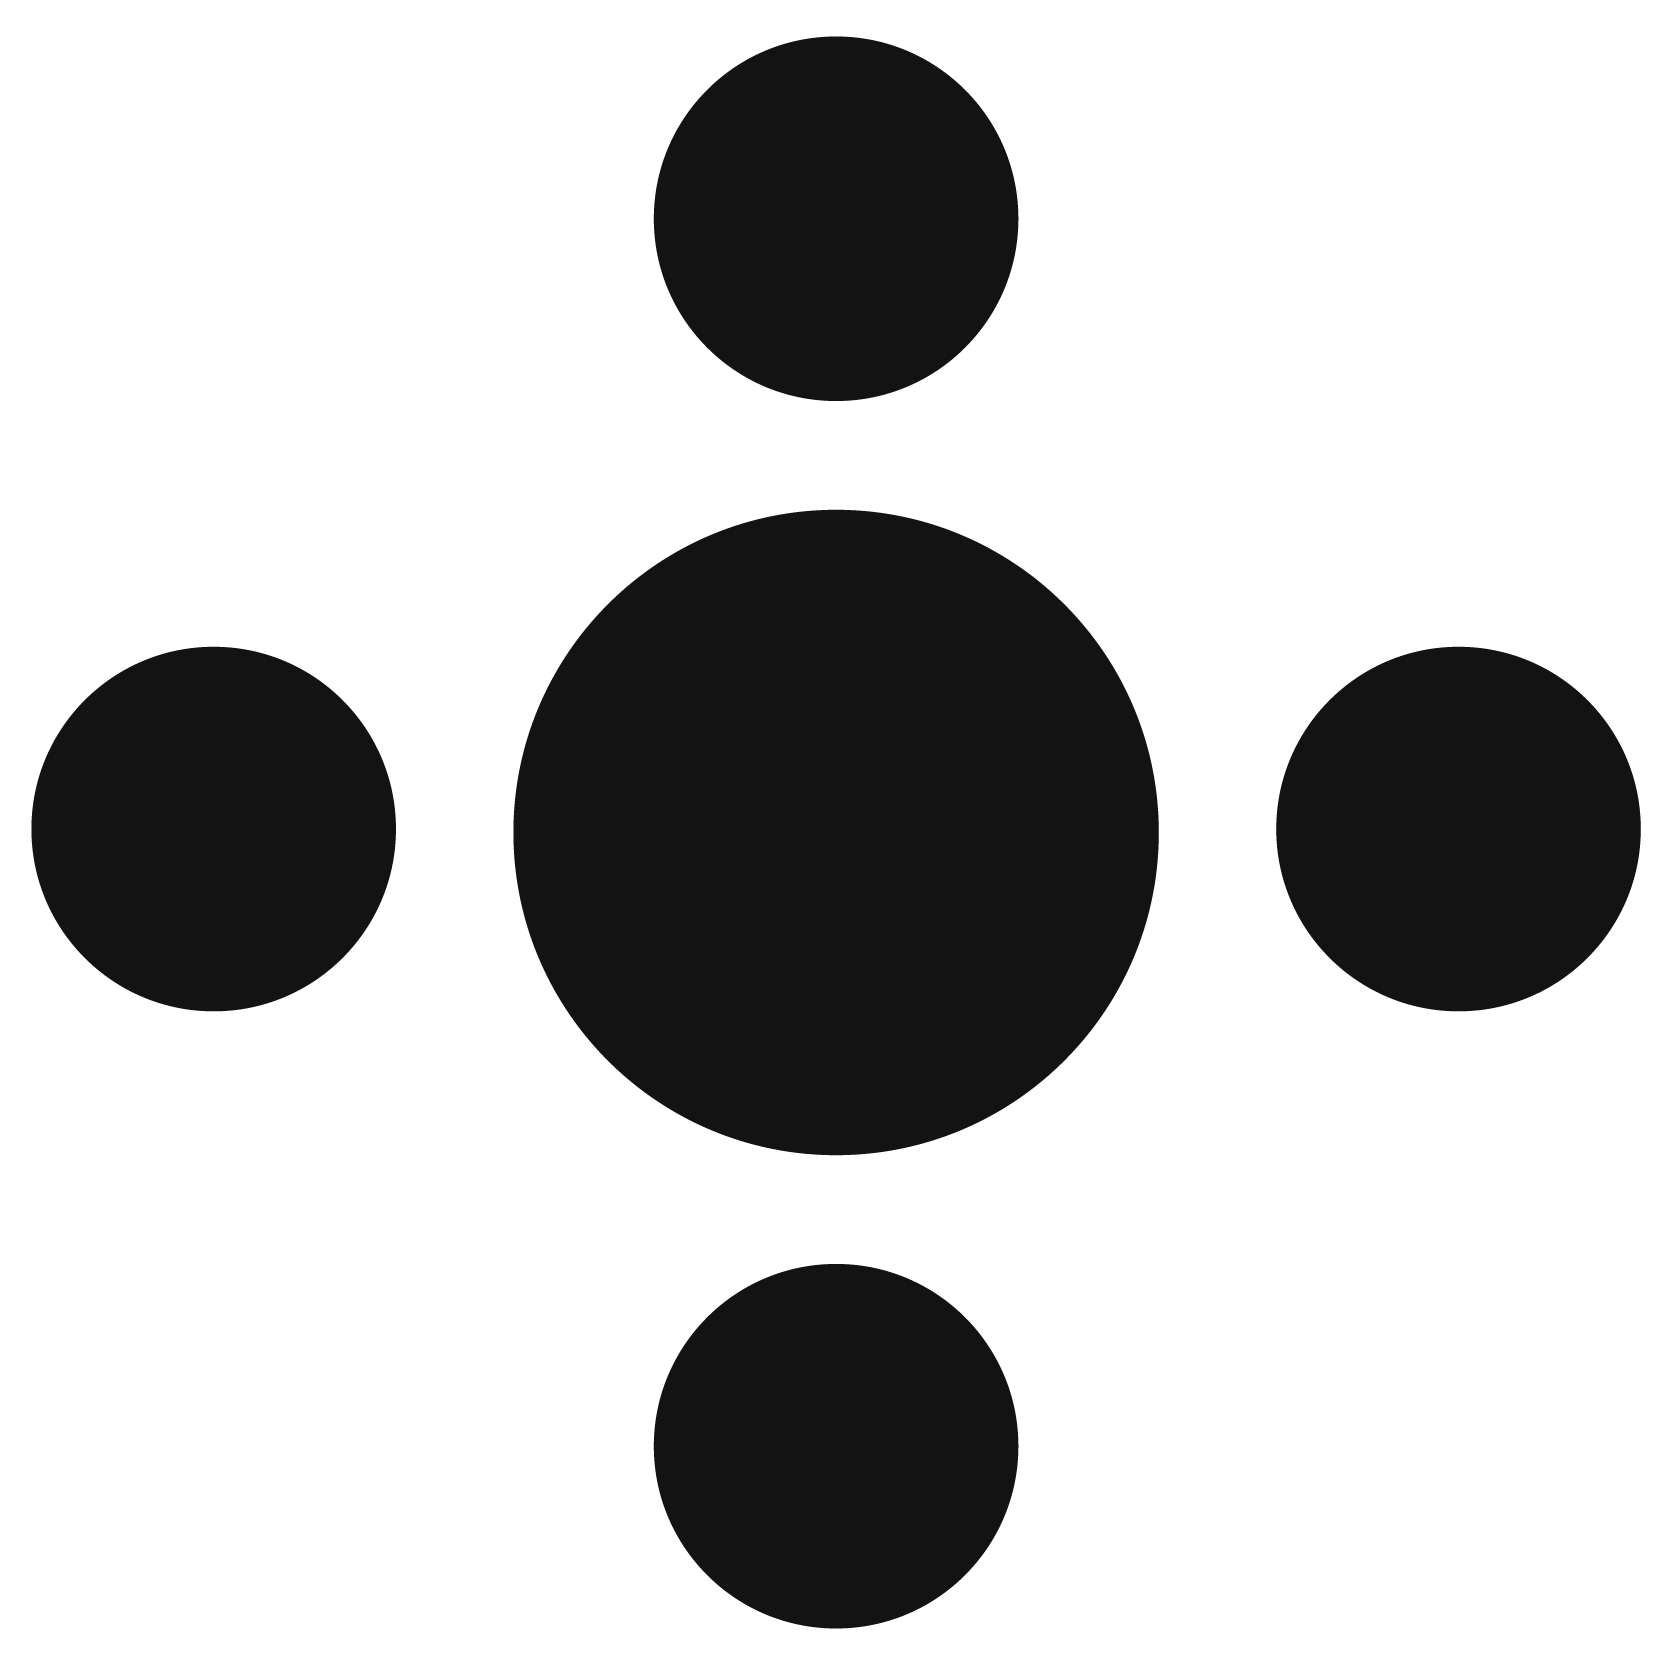 four dots encircling a dot